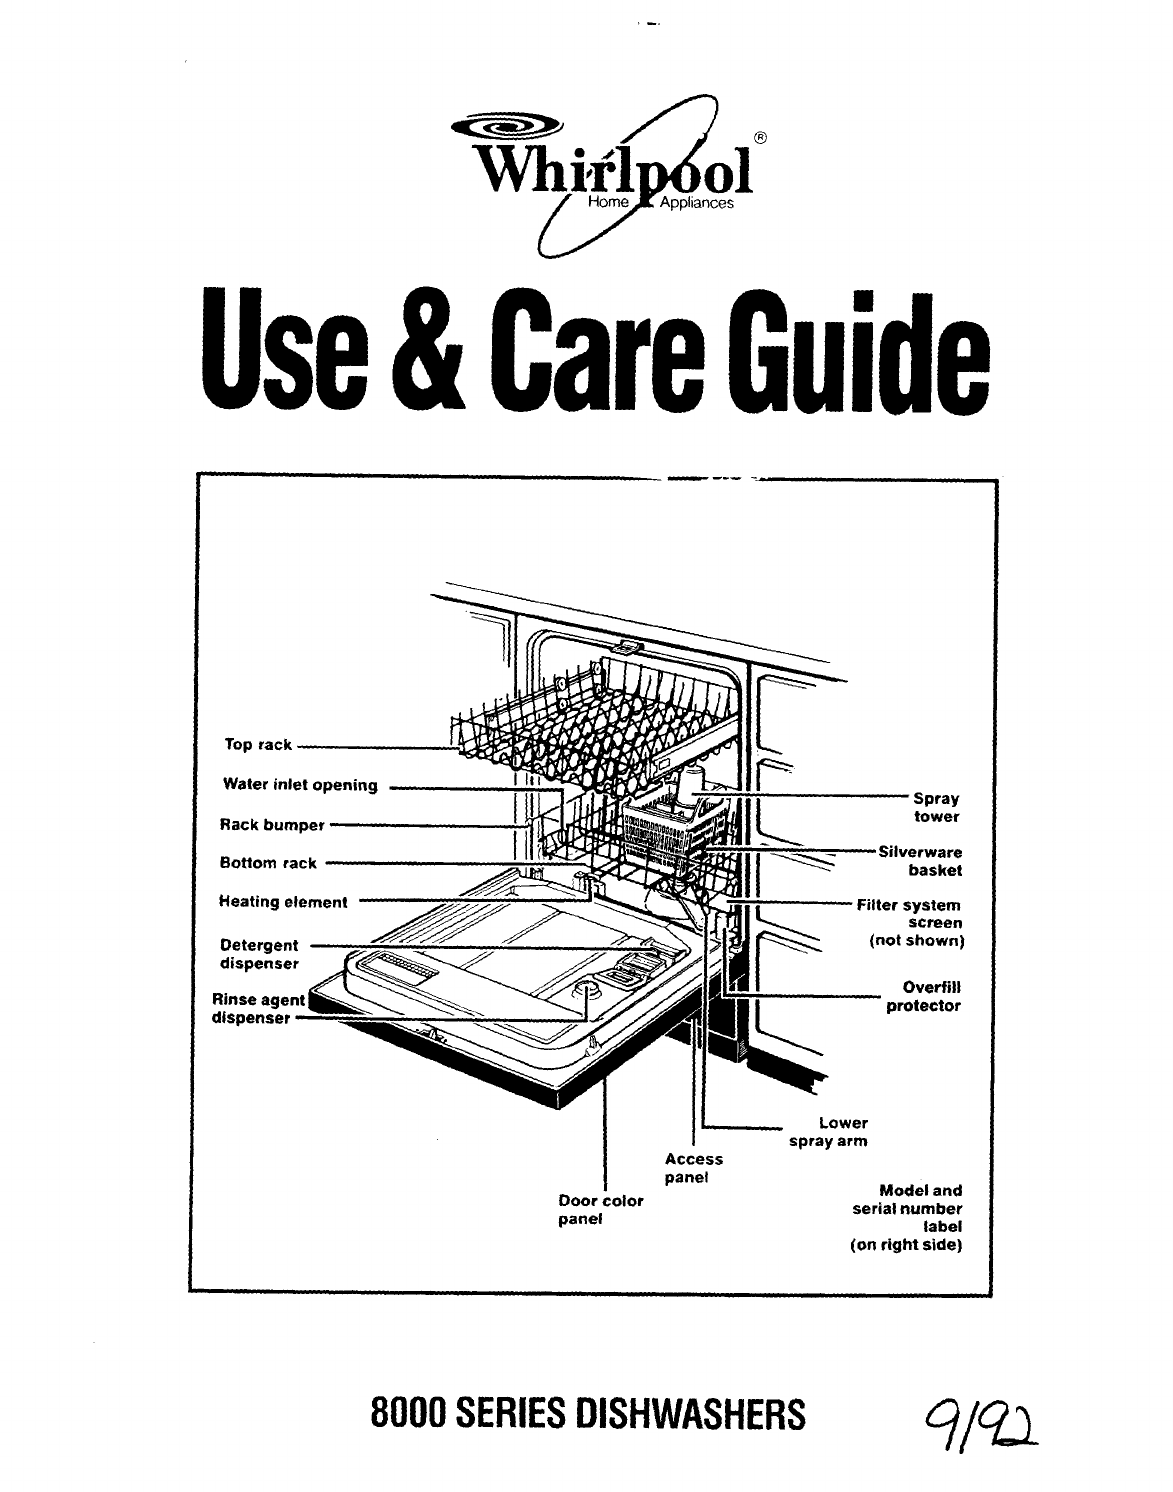 Whirlpool Dishwasher Series User Guide